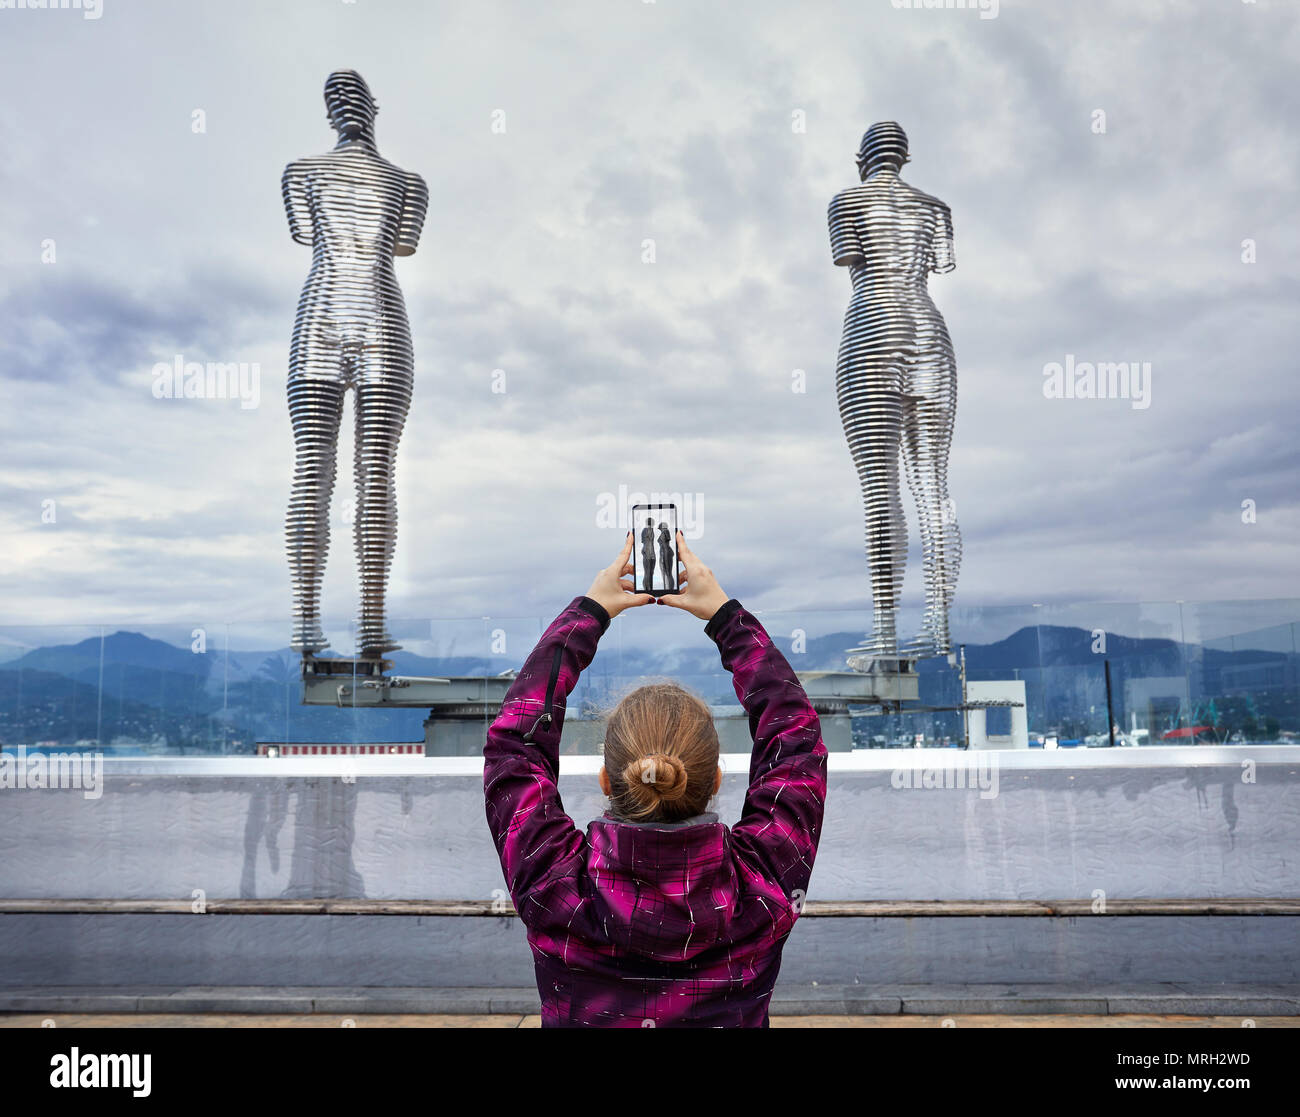 Tourist Woman tacking picture of statues Ali and Nino with smartphone in Batumi, Georgia - Stock Image